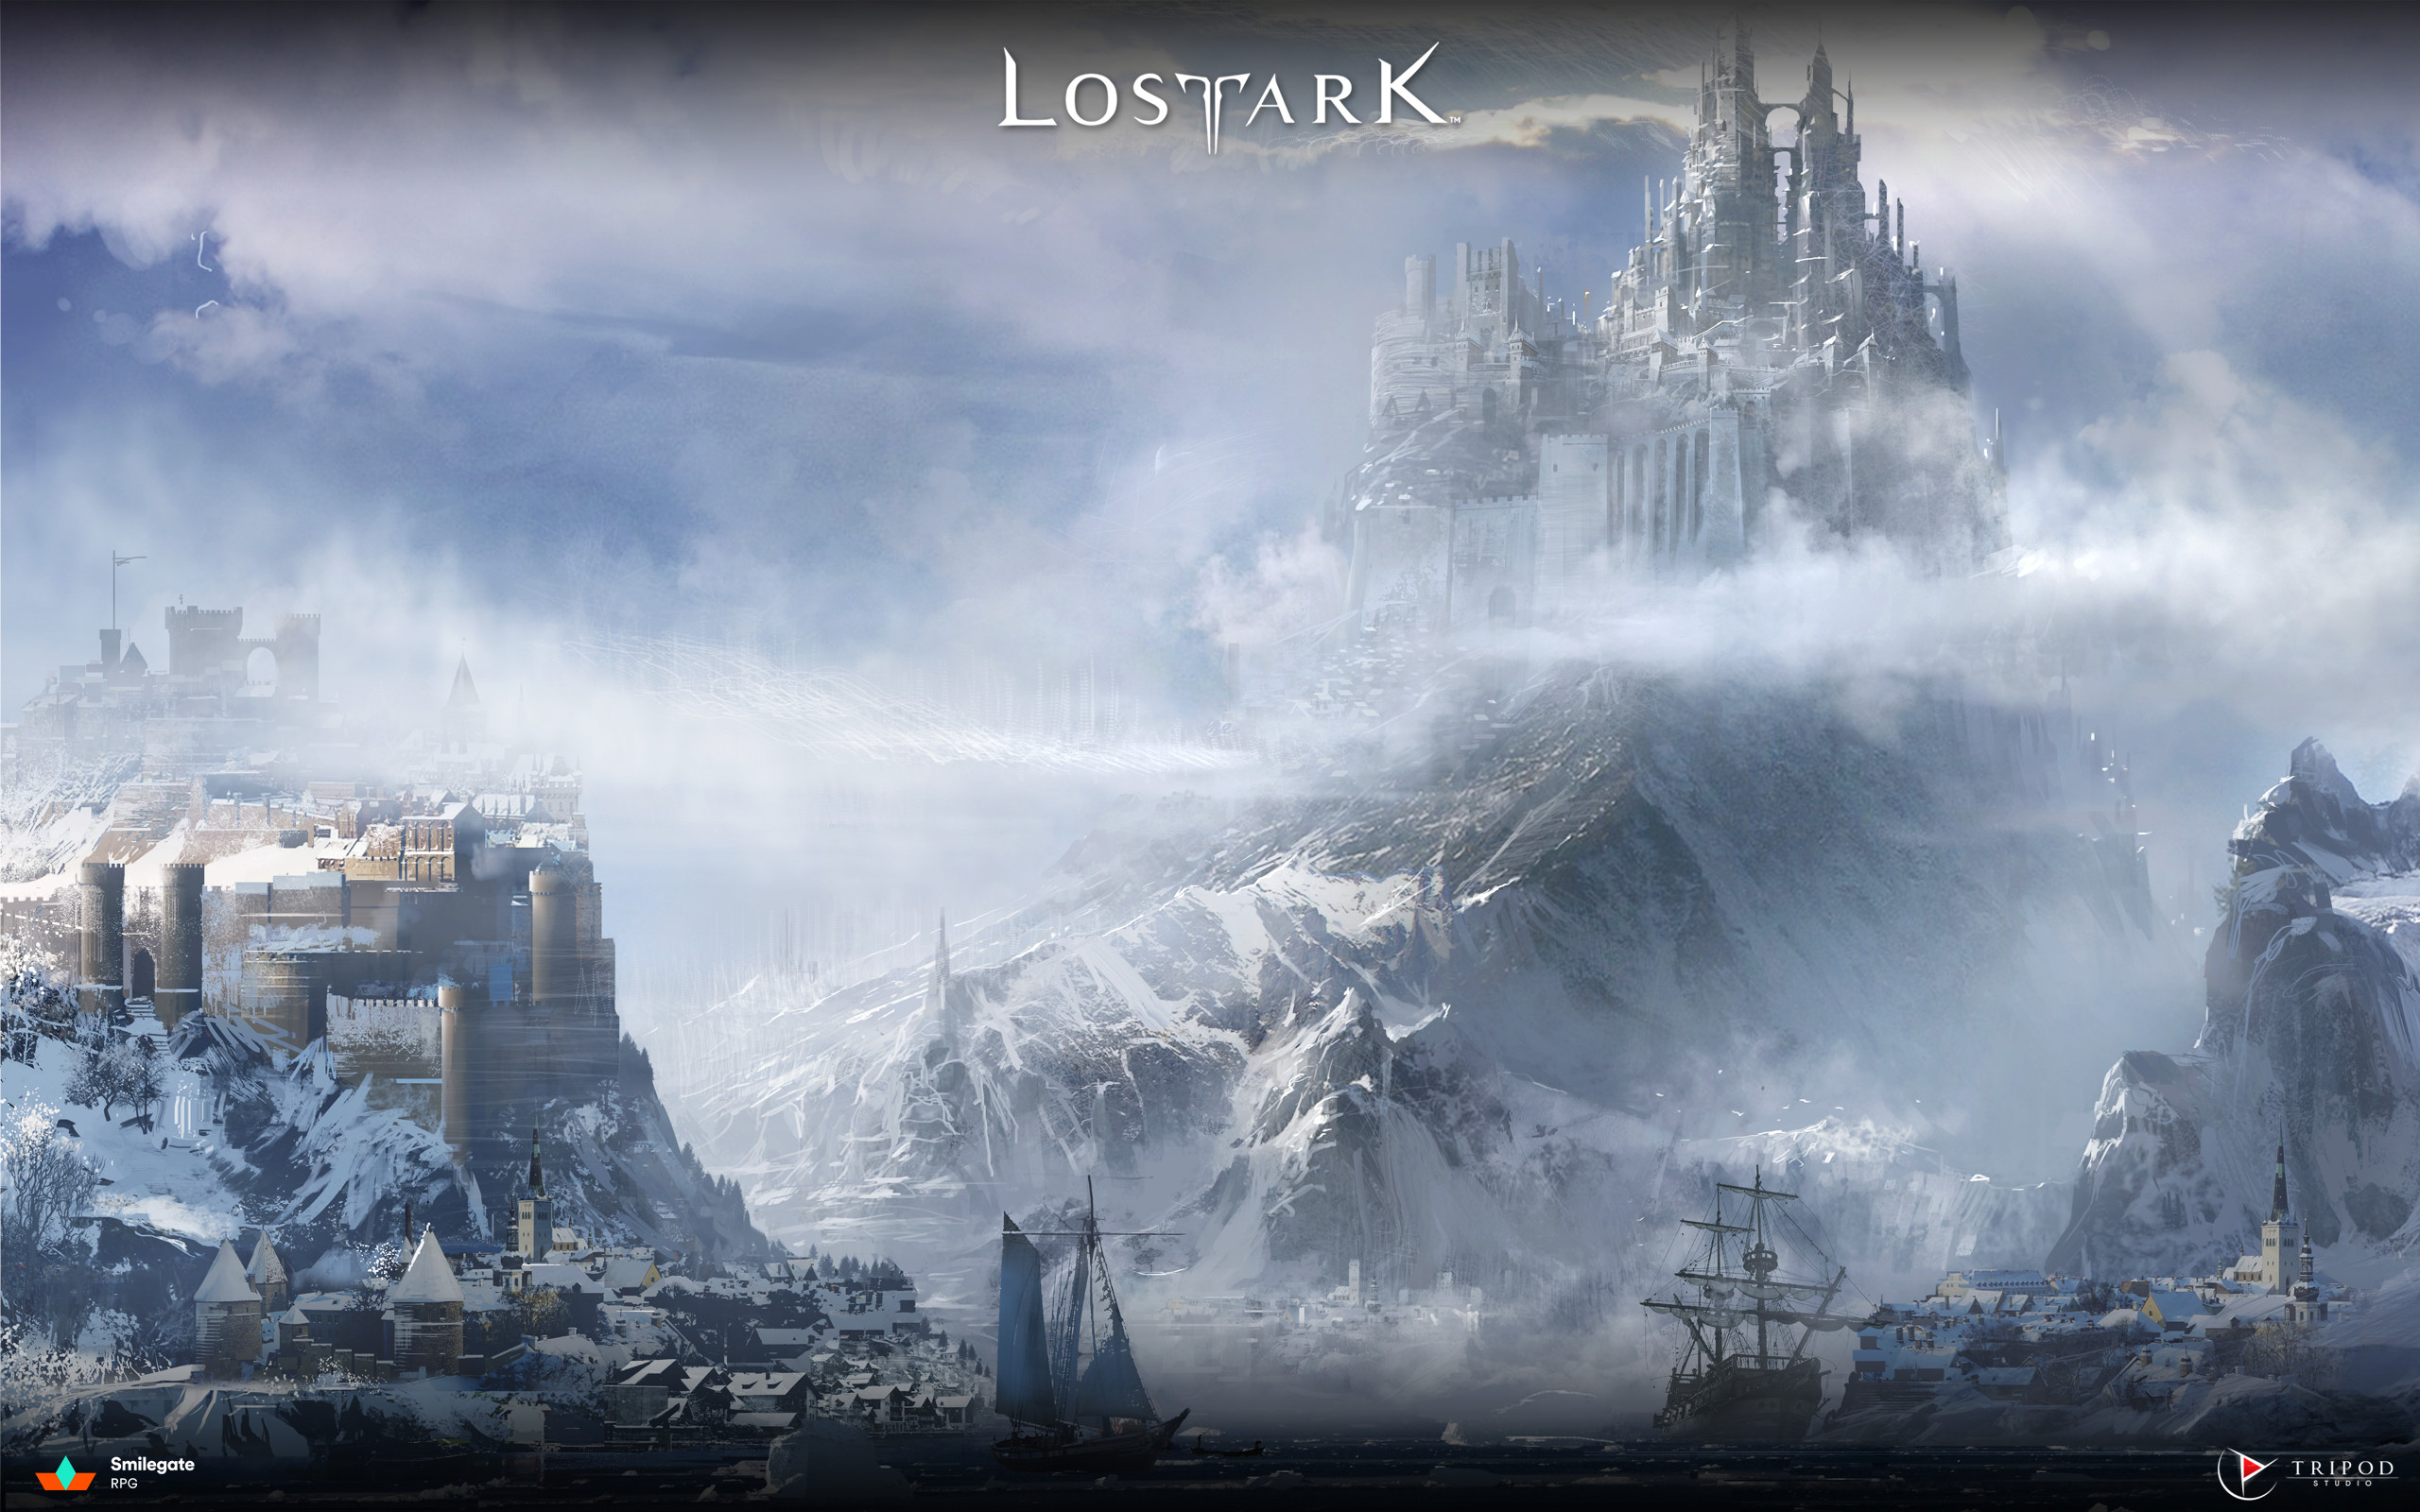 Lost Ark Online: PC specs, classes, gameplay and more - VG247